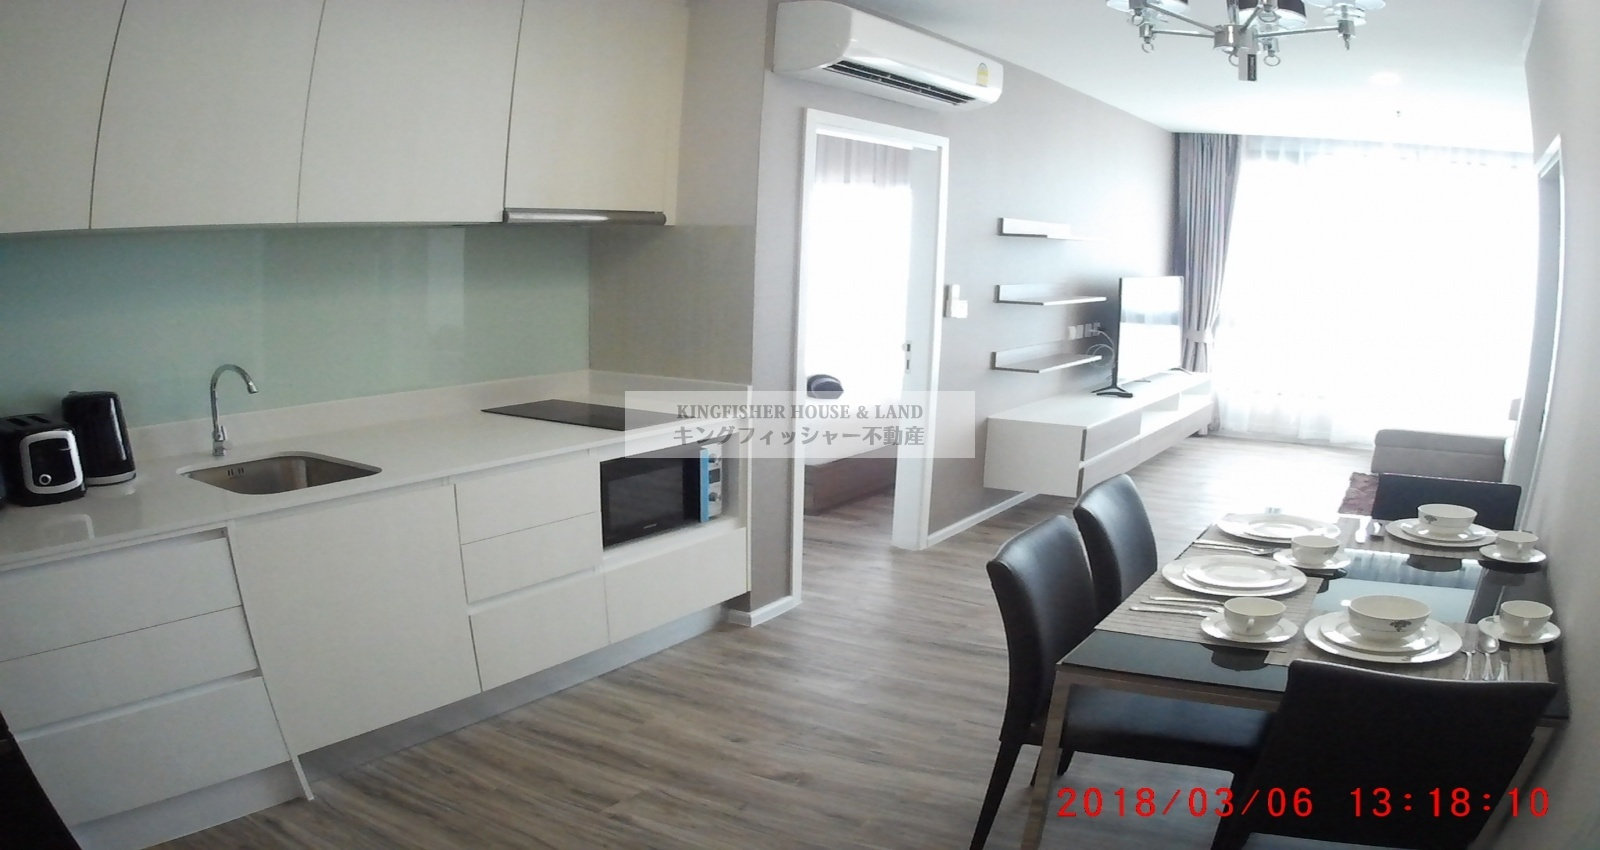 2 Bedrooms, Condominium, For Rent, 2 Bathrooms, Listing ID 1231, Sriracha, Thailand, 20110,